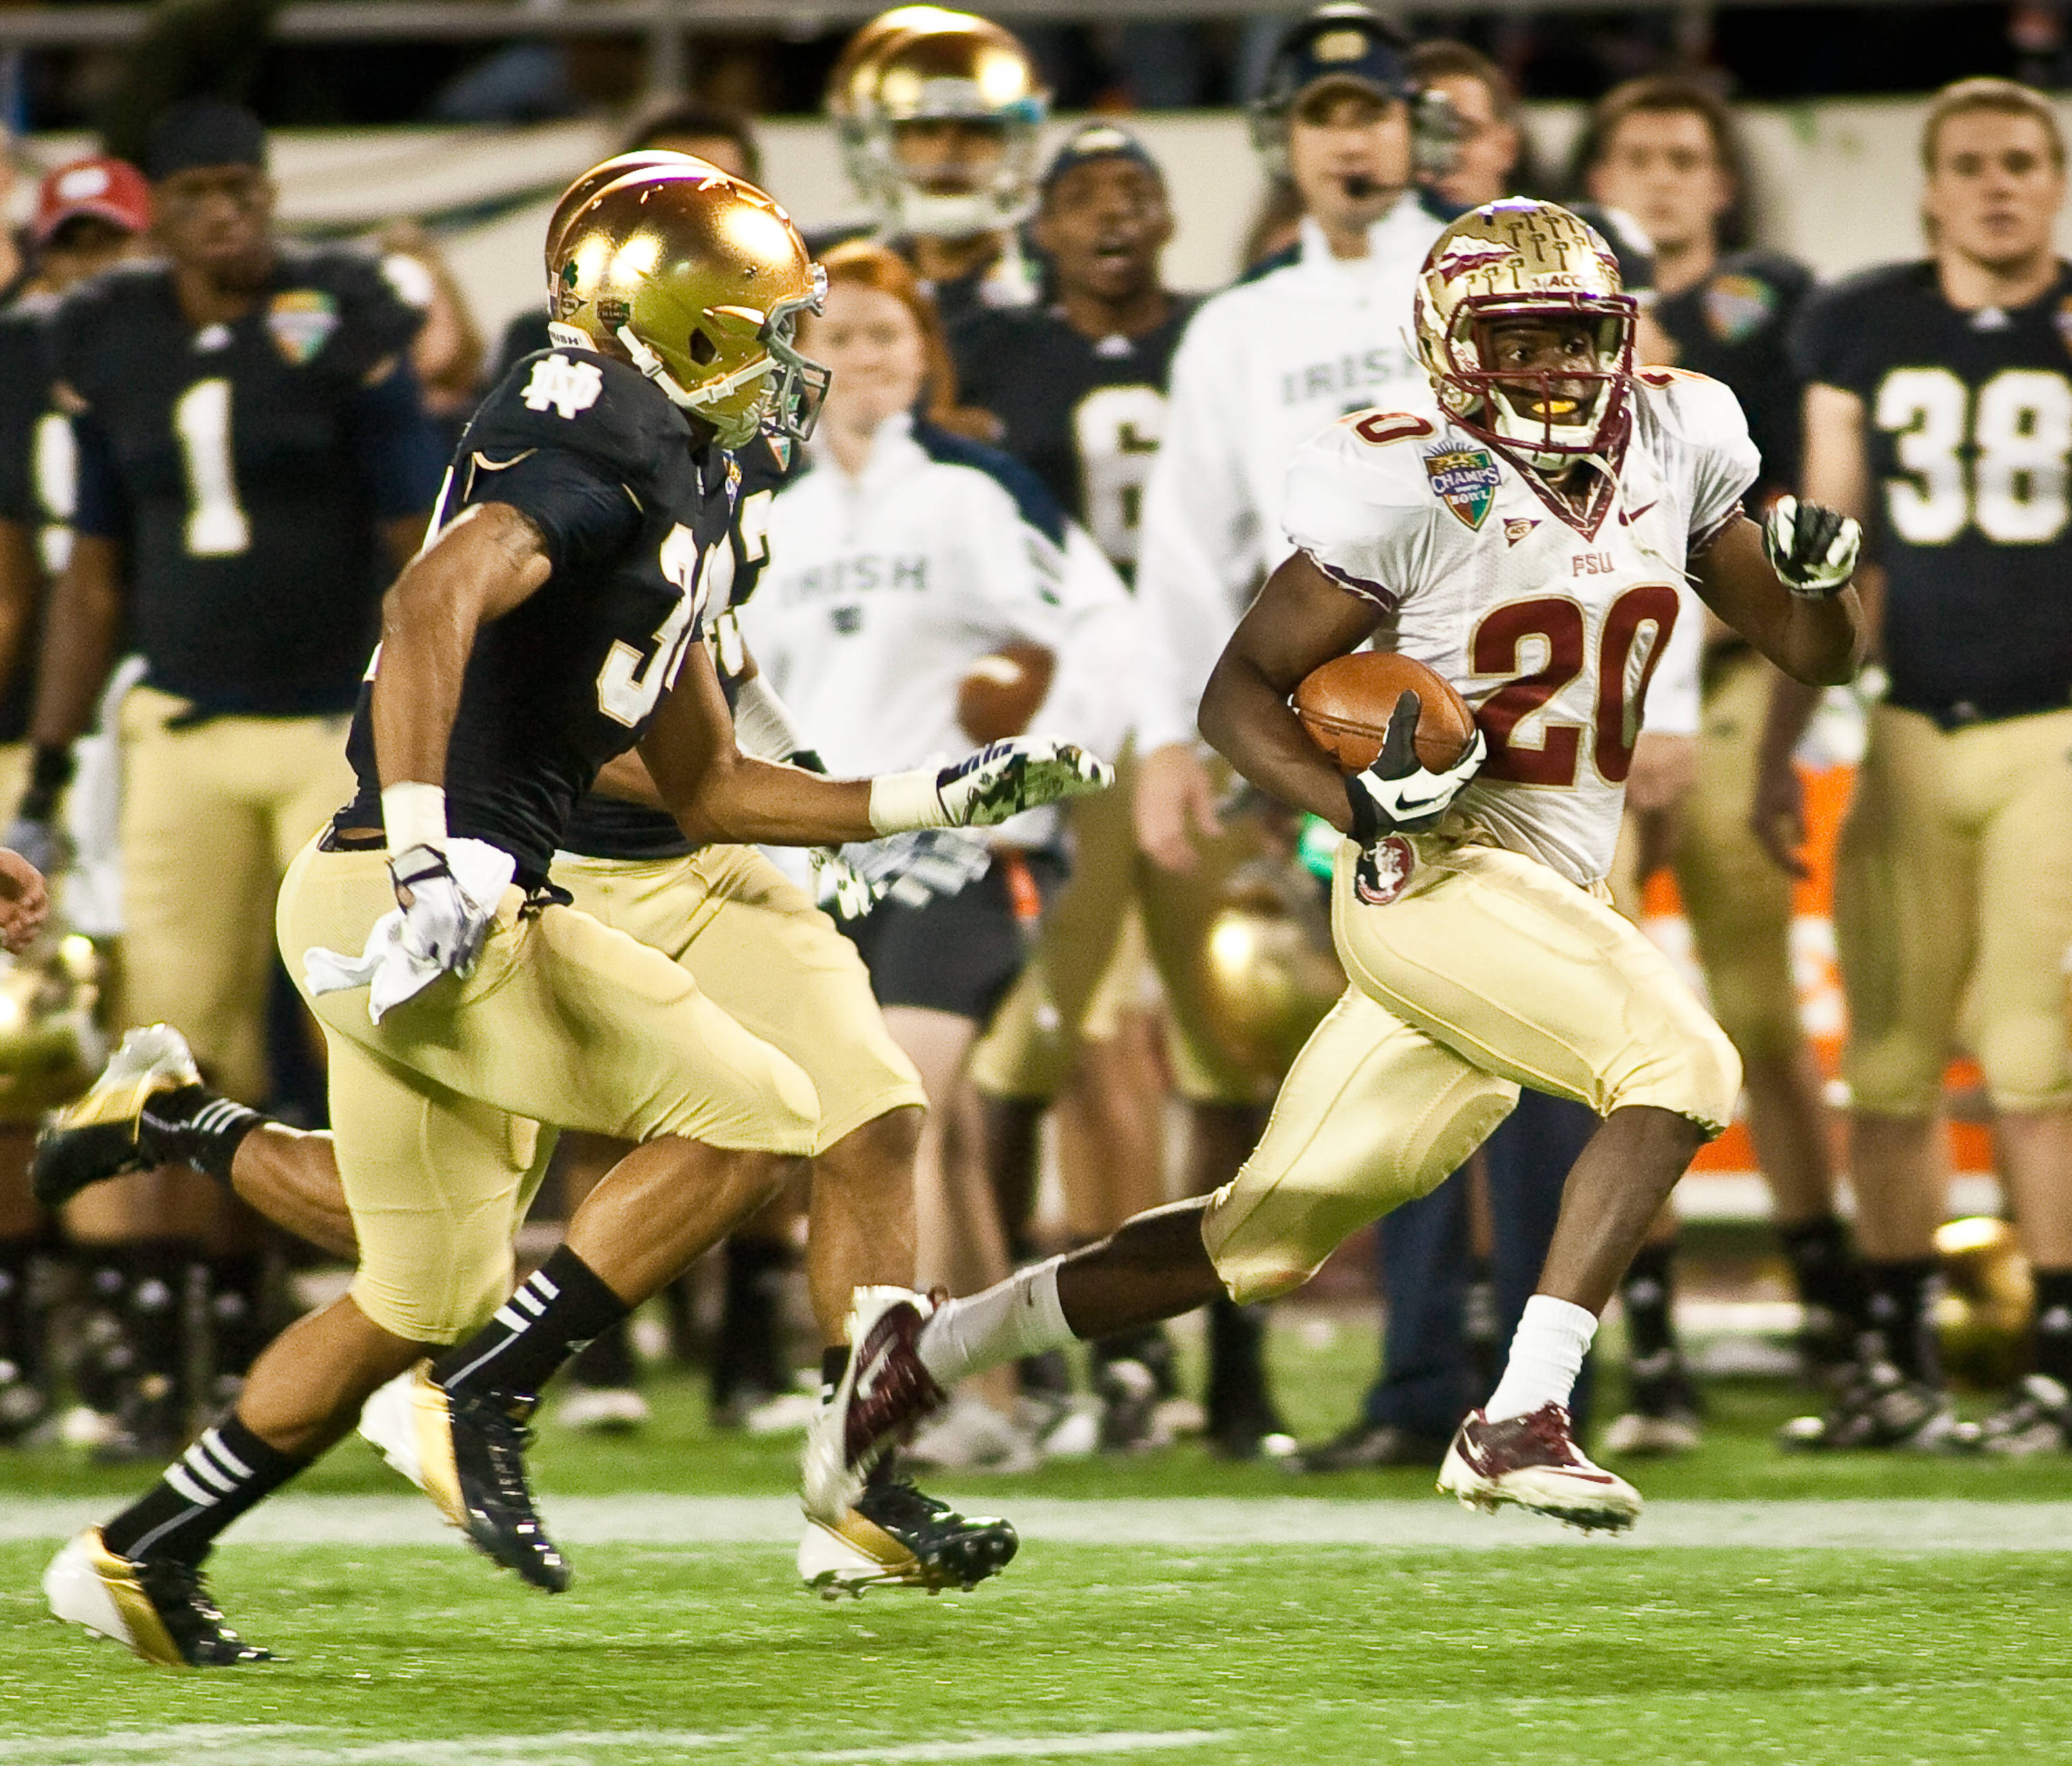 Lamarcus Joyner (20) with a long kickoff return that sparked the Seminoles' victory over Notre Dame in the Champs Sports Bowl.